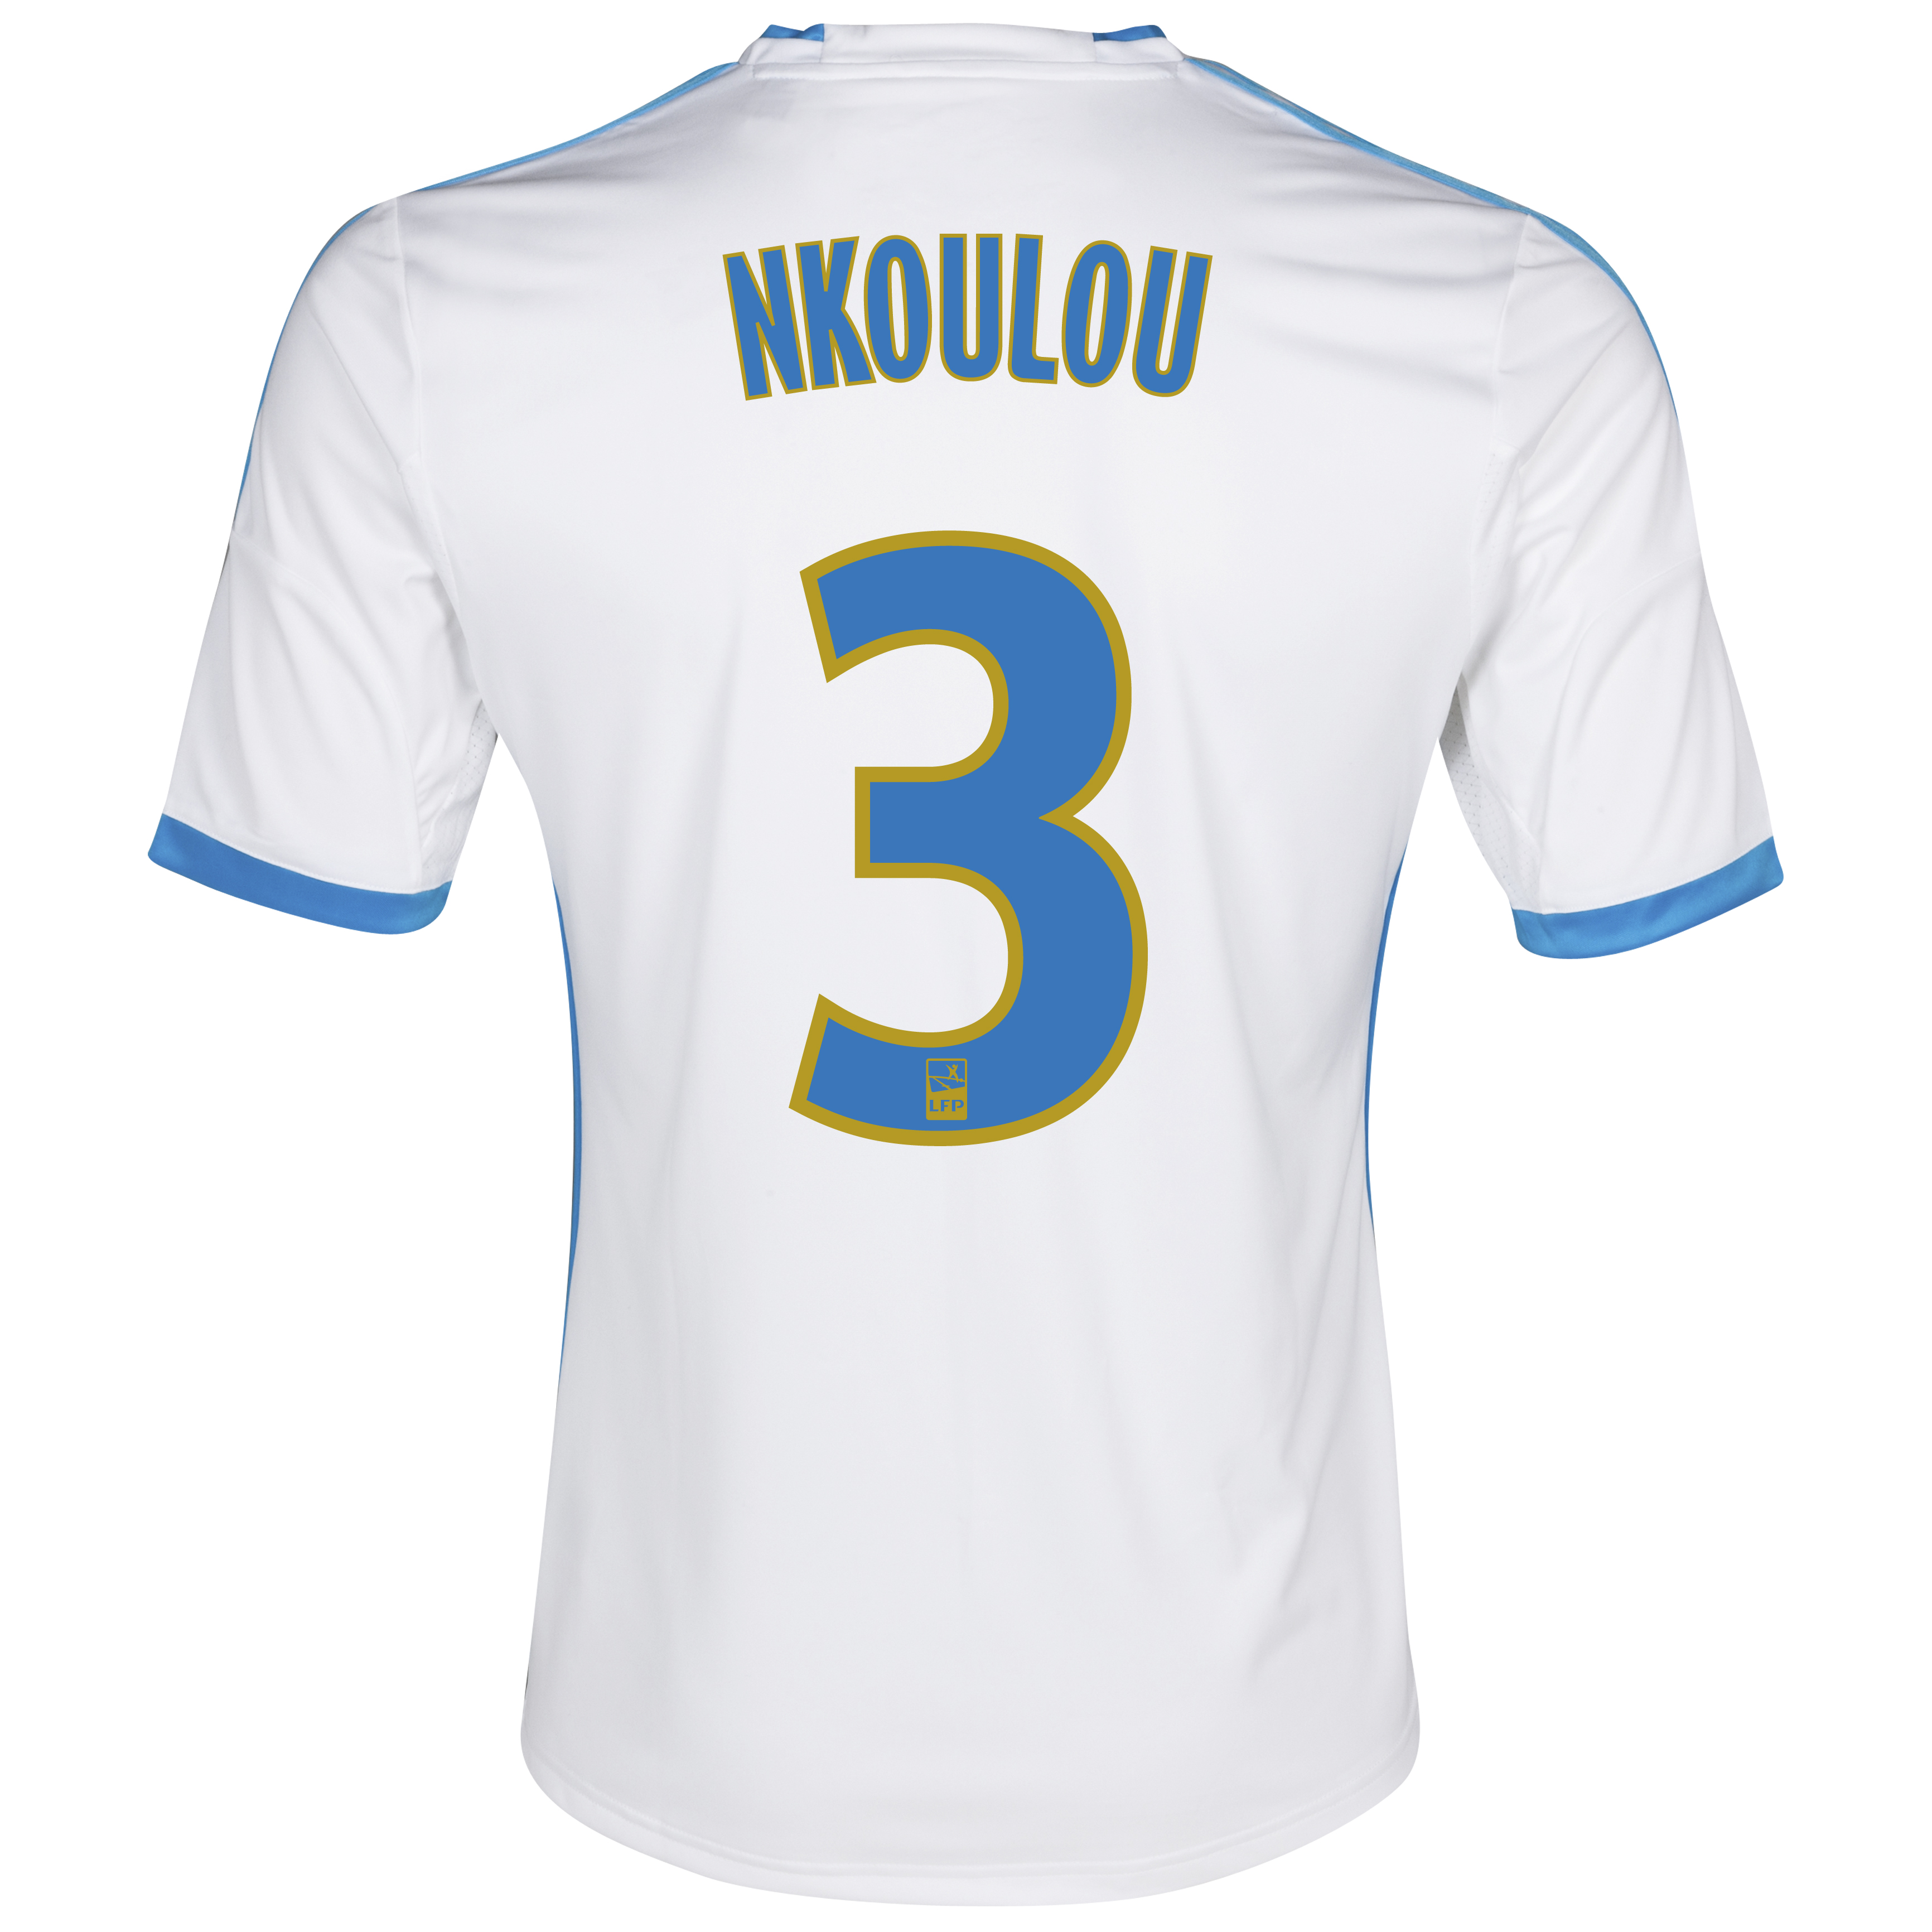 Olympique De Marseille Home Shirt SS 2013/14 - Womens White with Nkoulou 3 printing